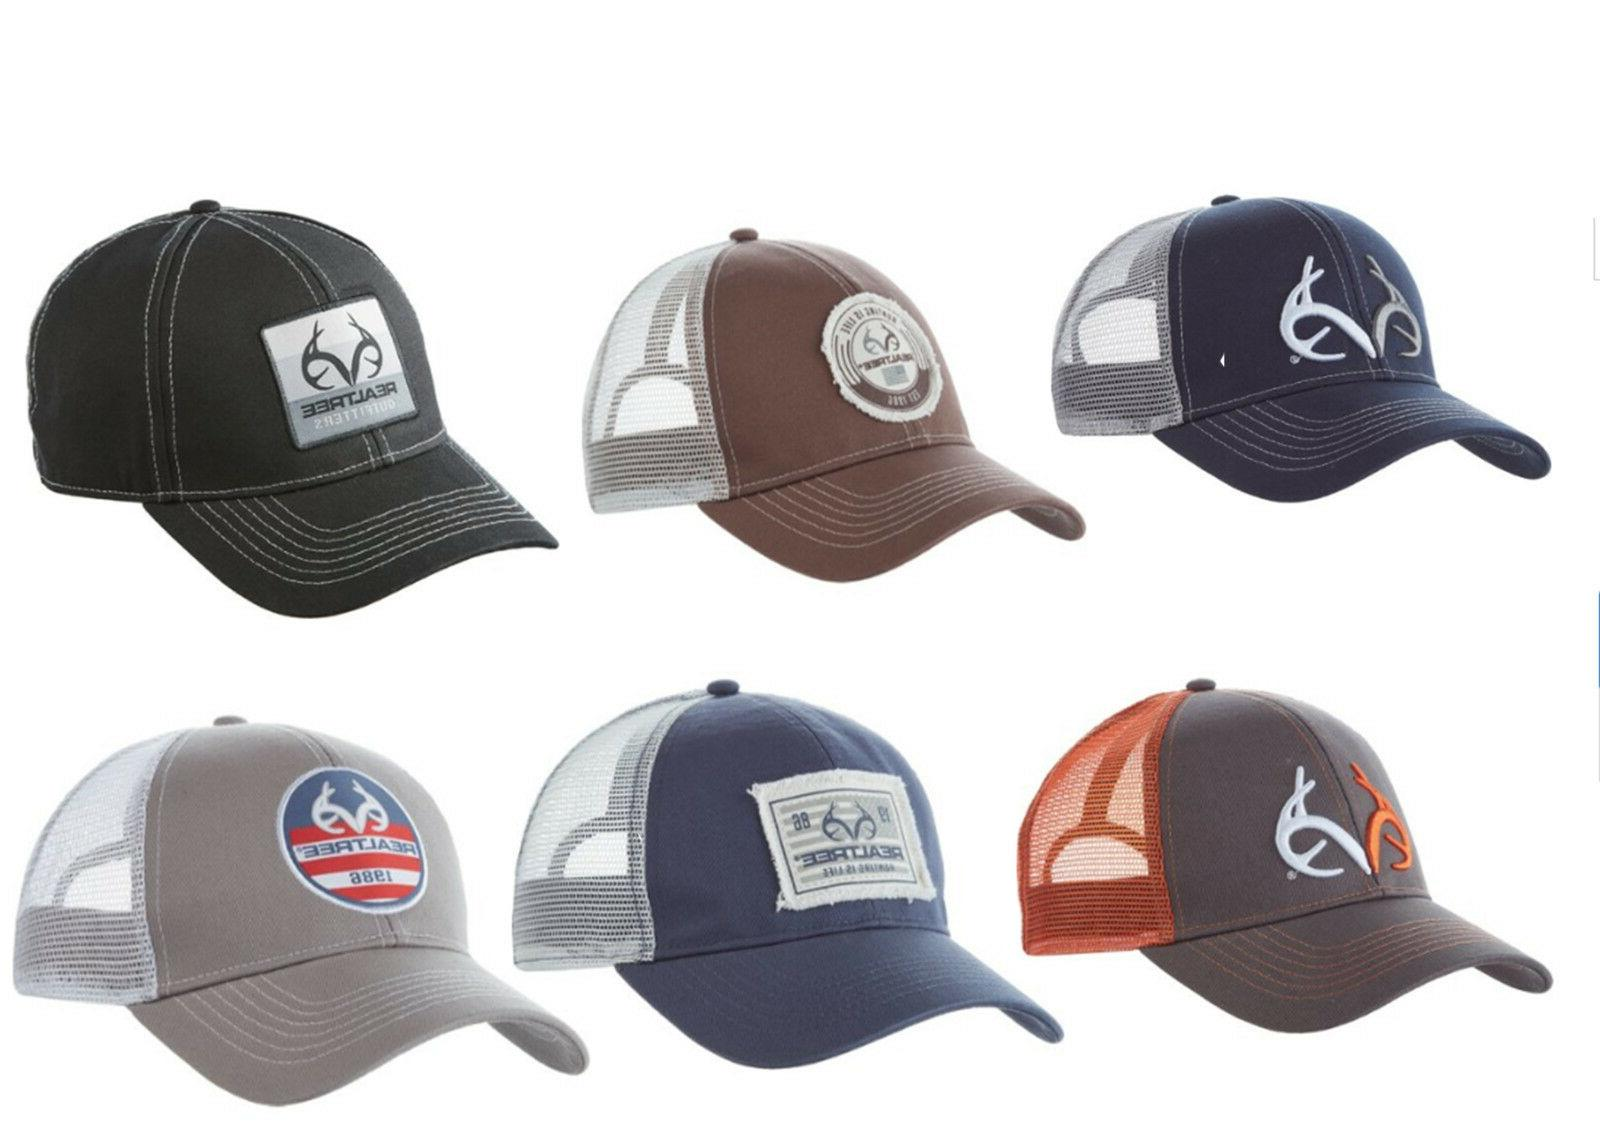 realtree outfitters trucker hat cap 6 colors